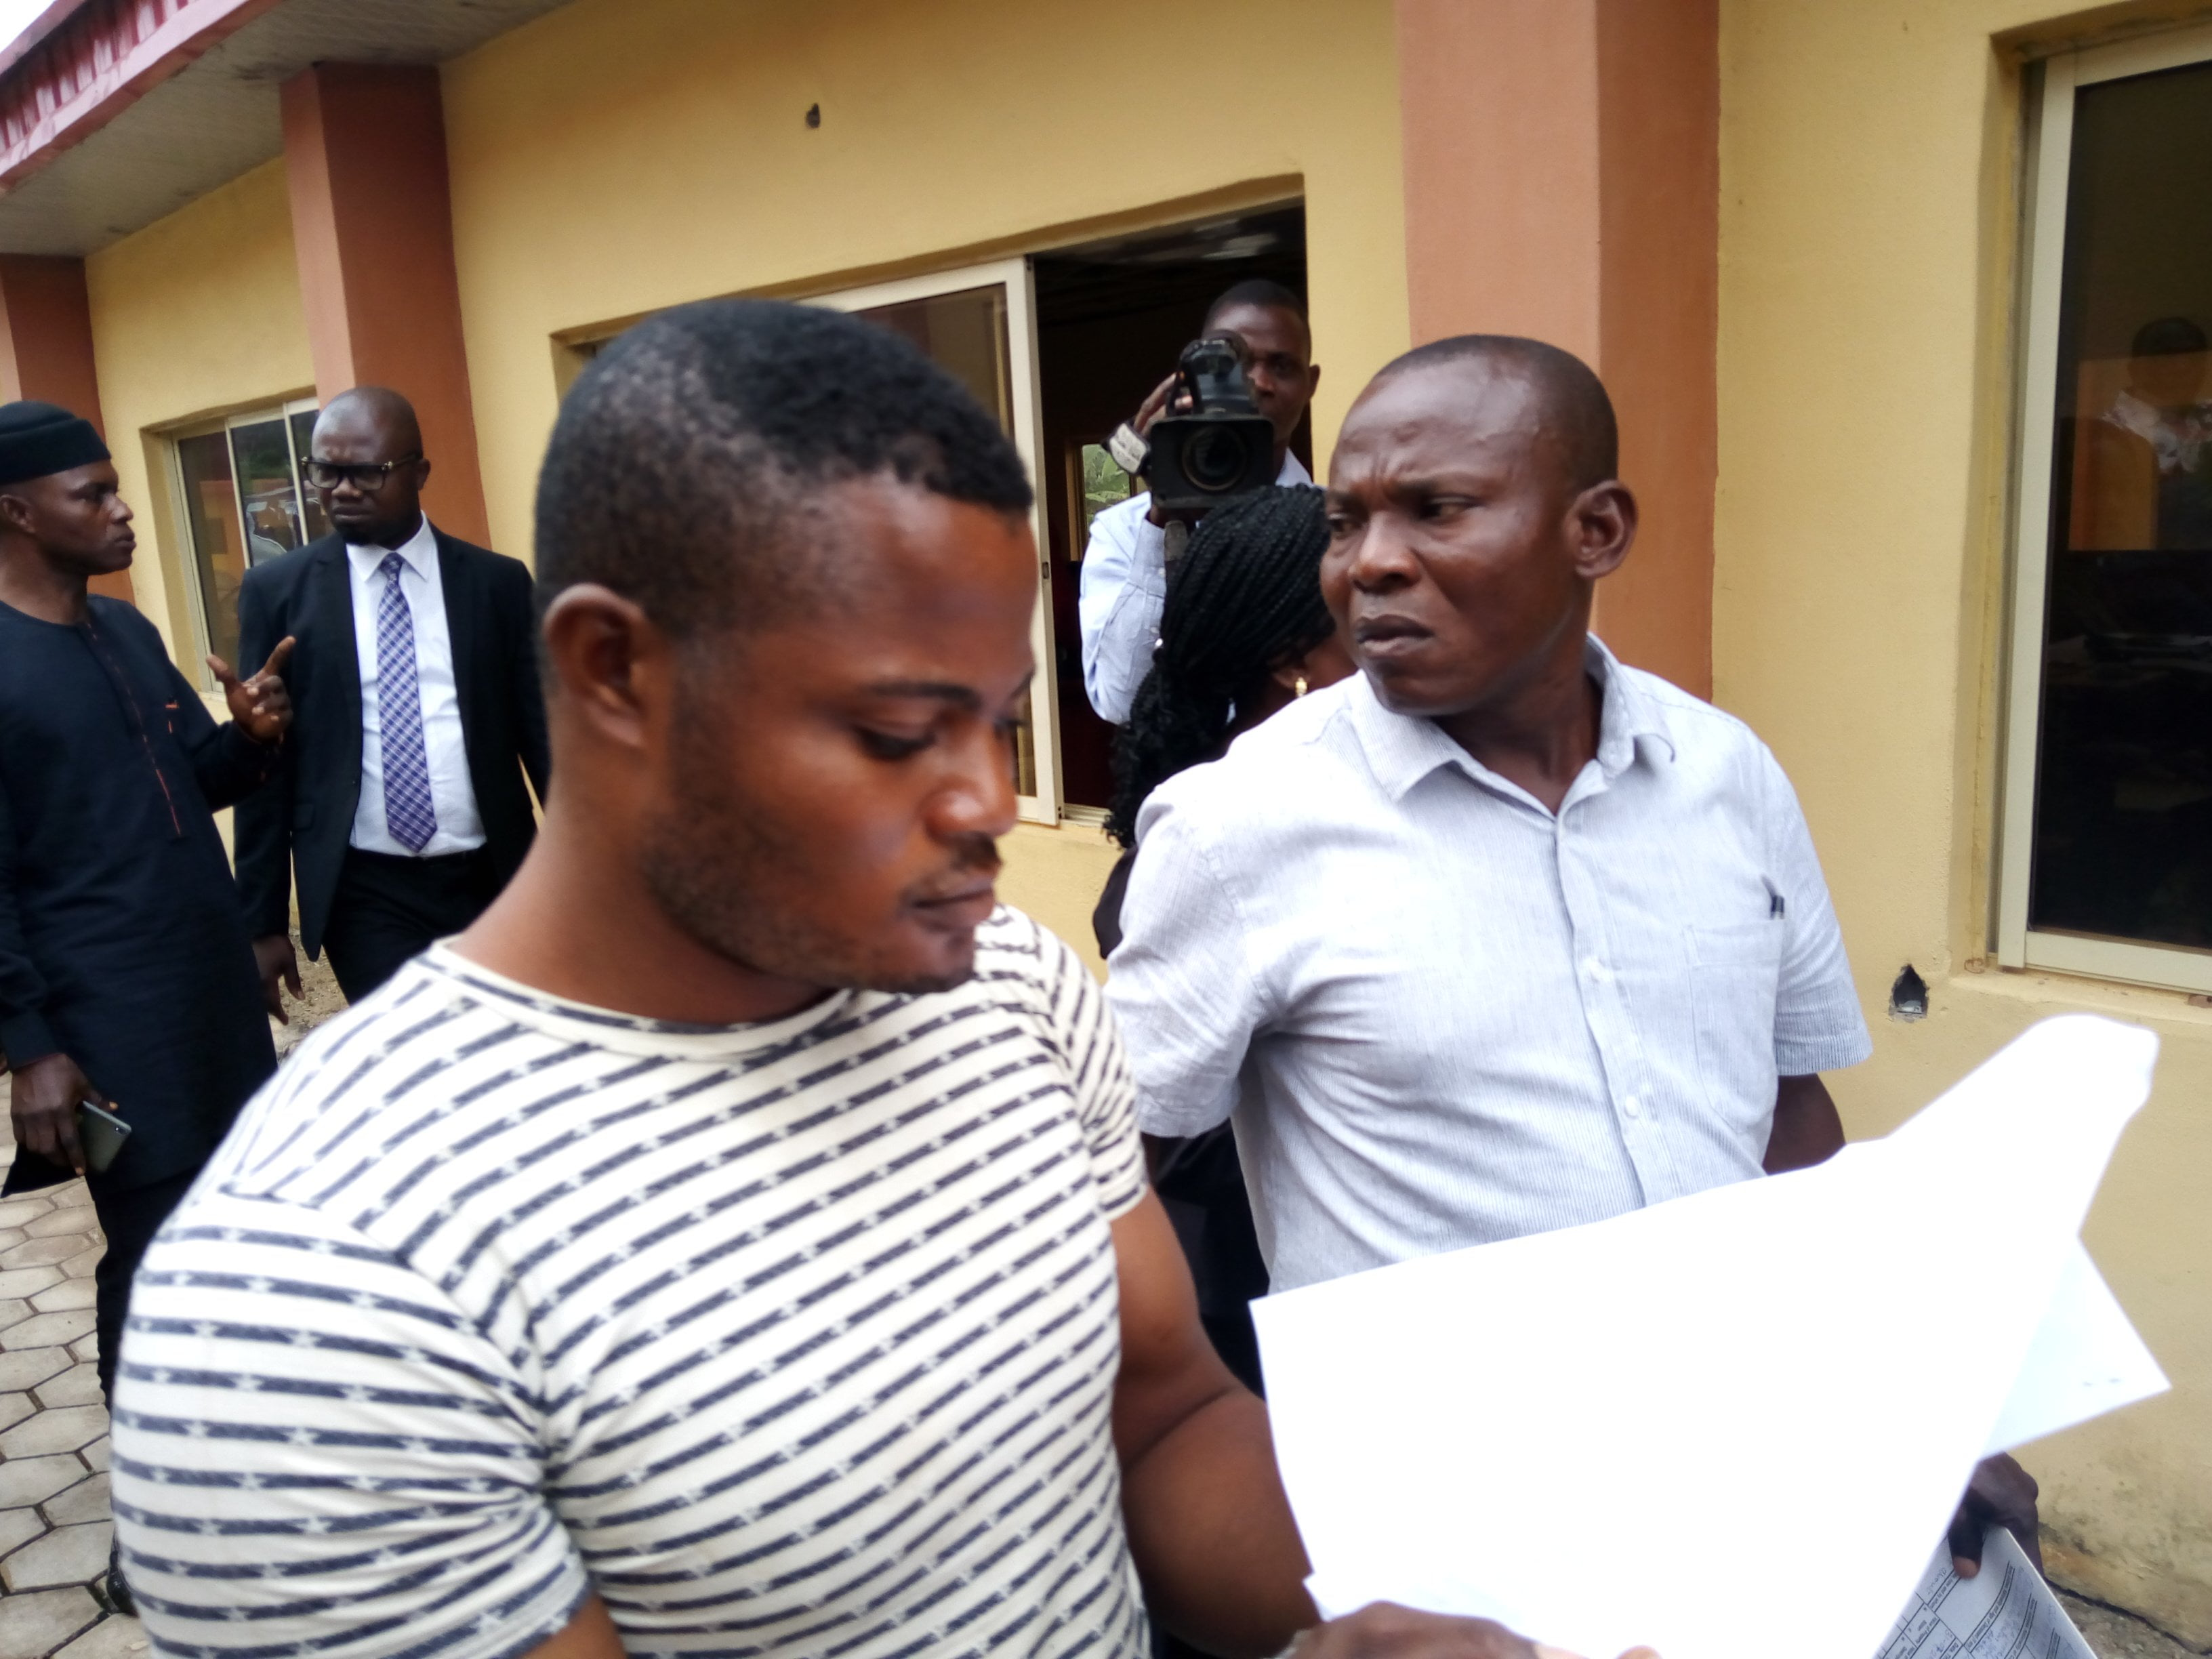 IMG 20190814 092826 8 - Soldier Accused Of Raping University Student Arraigned In Court (Photos)